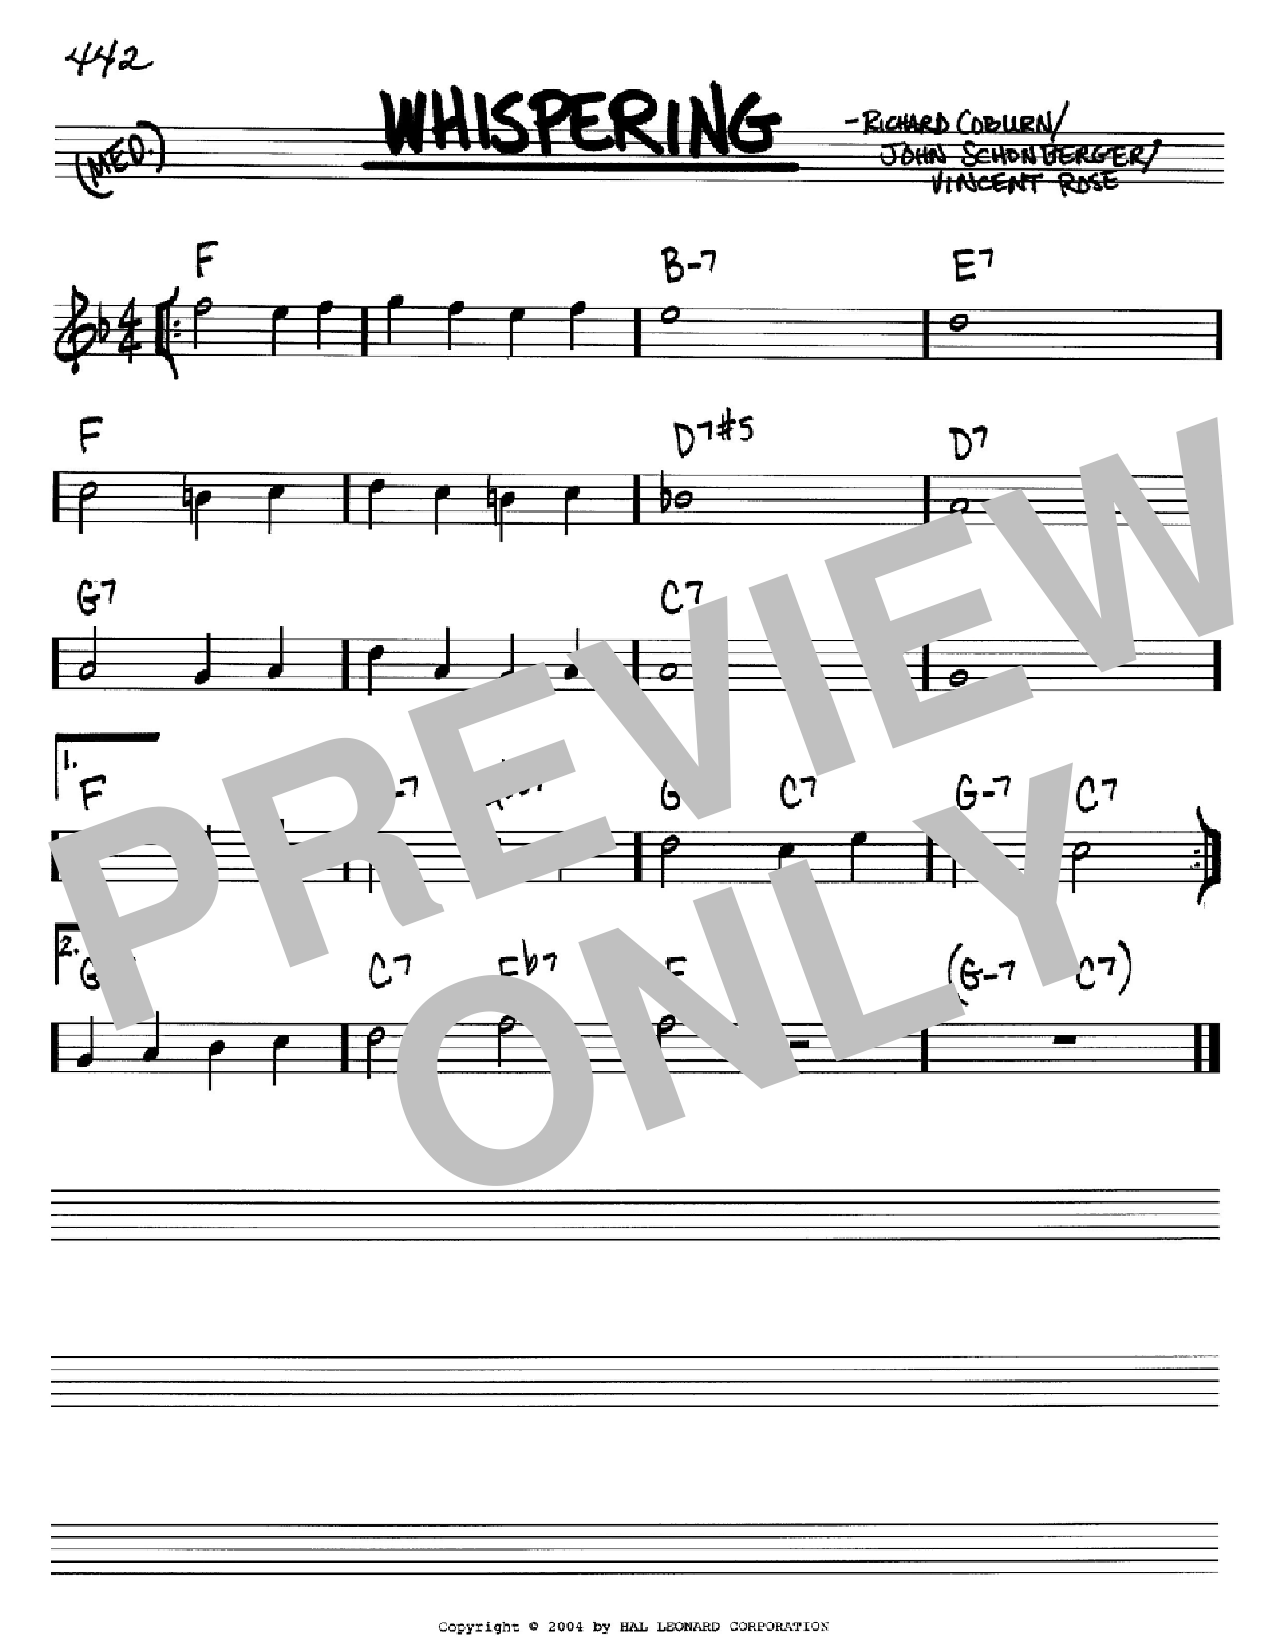 Whispering Sheet Music